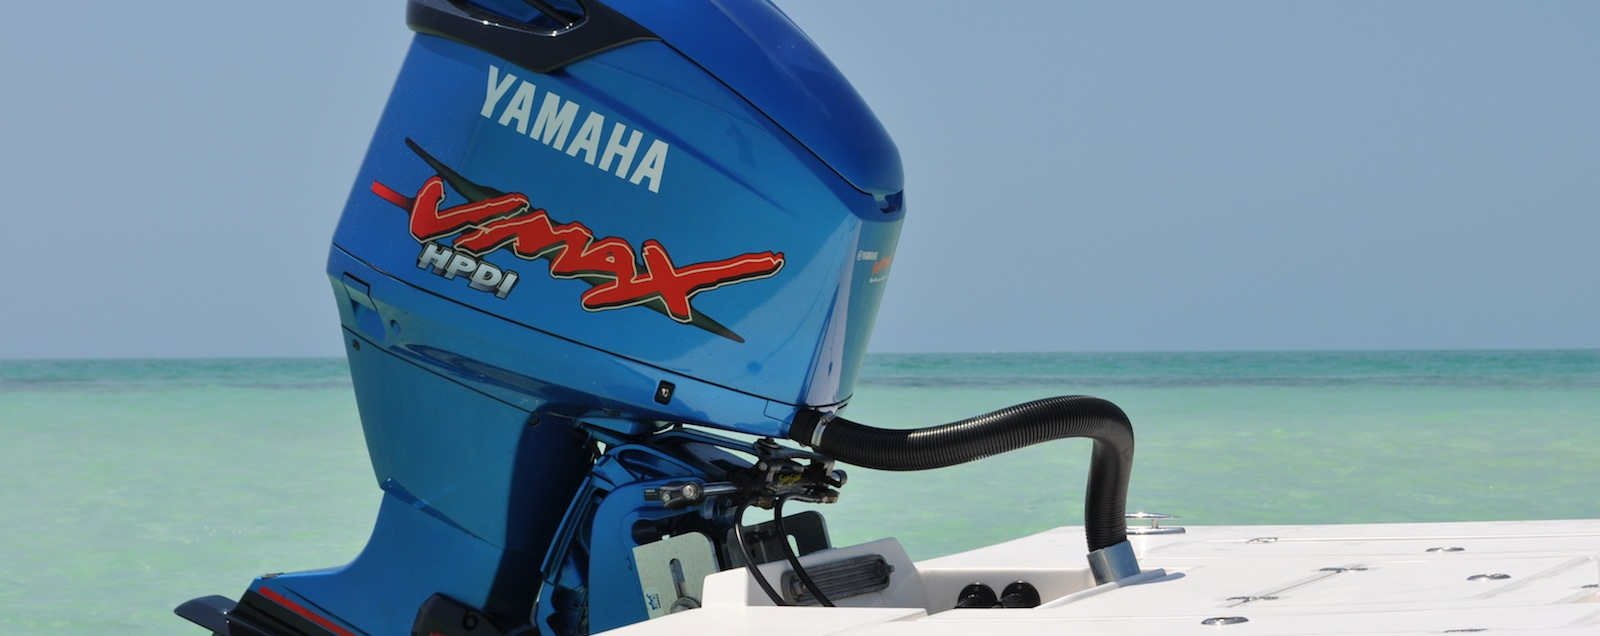 Yamaha Outboard White Paint